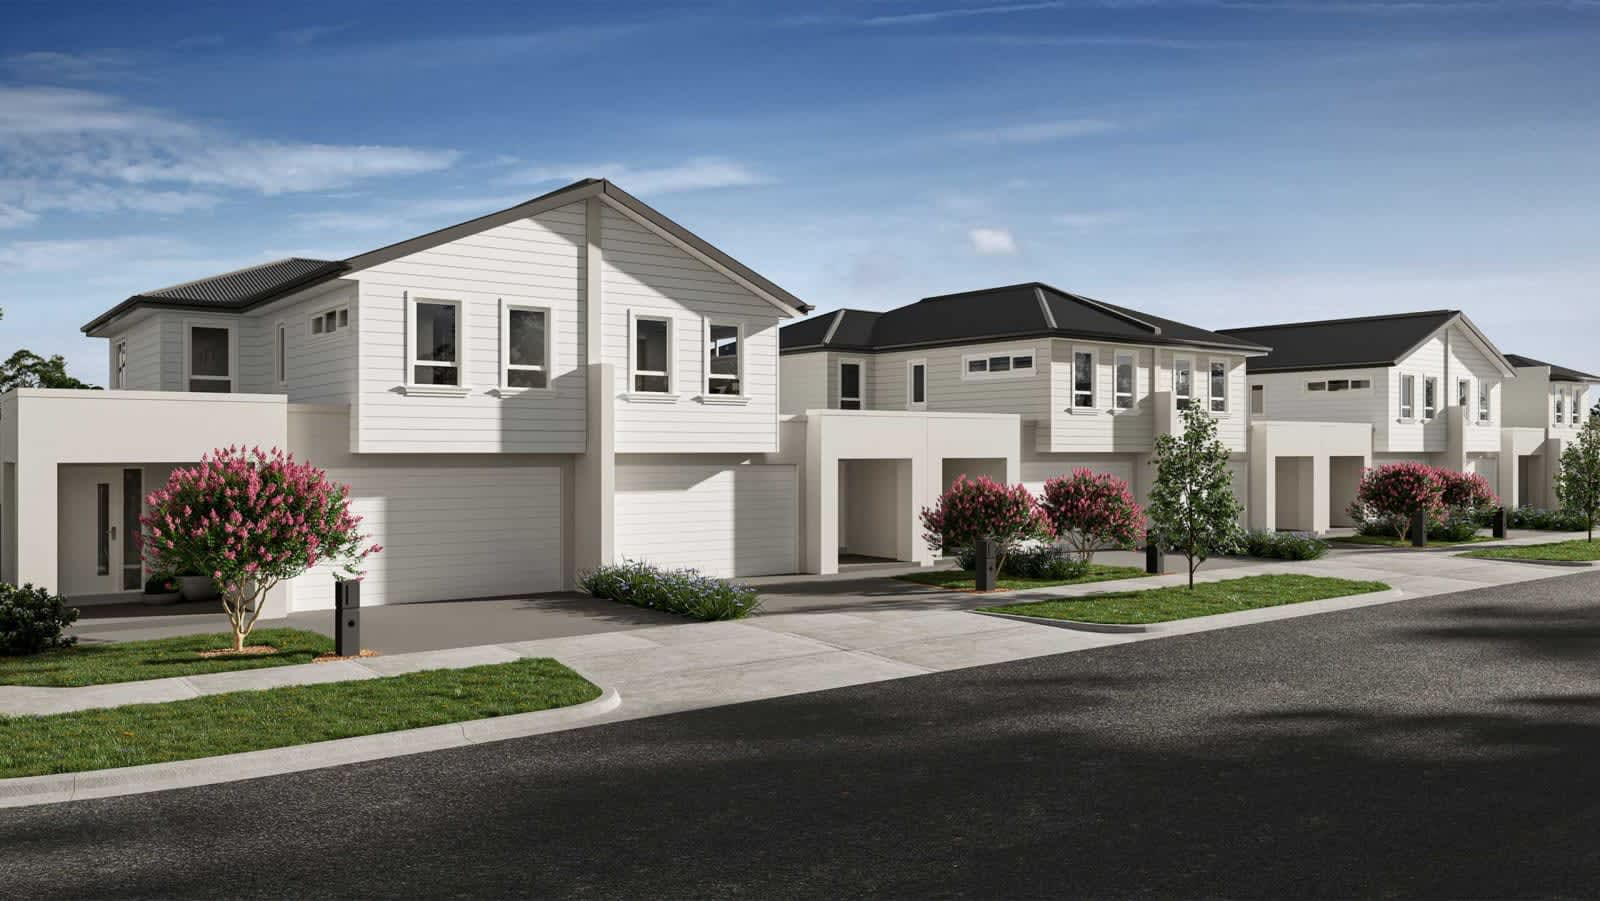 Hamptons Townhomes at Cloverton